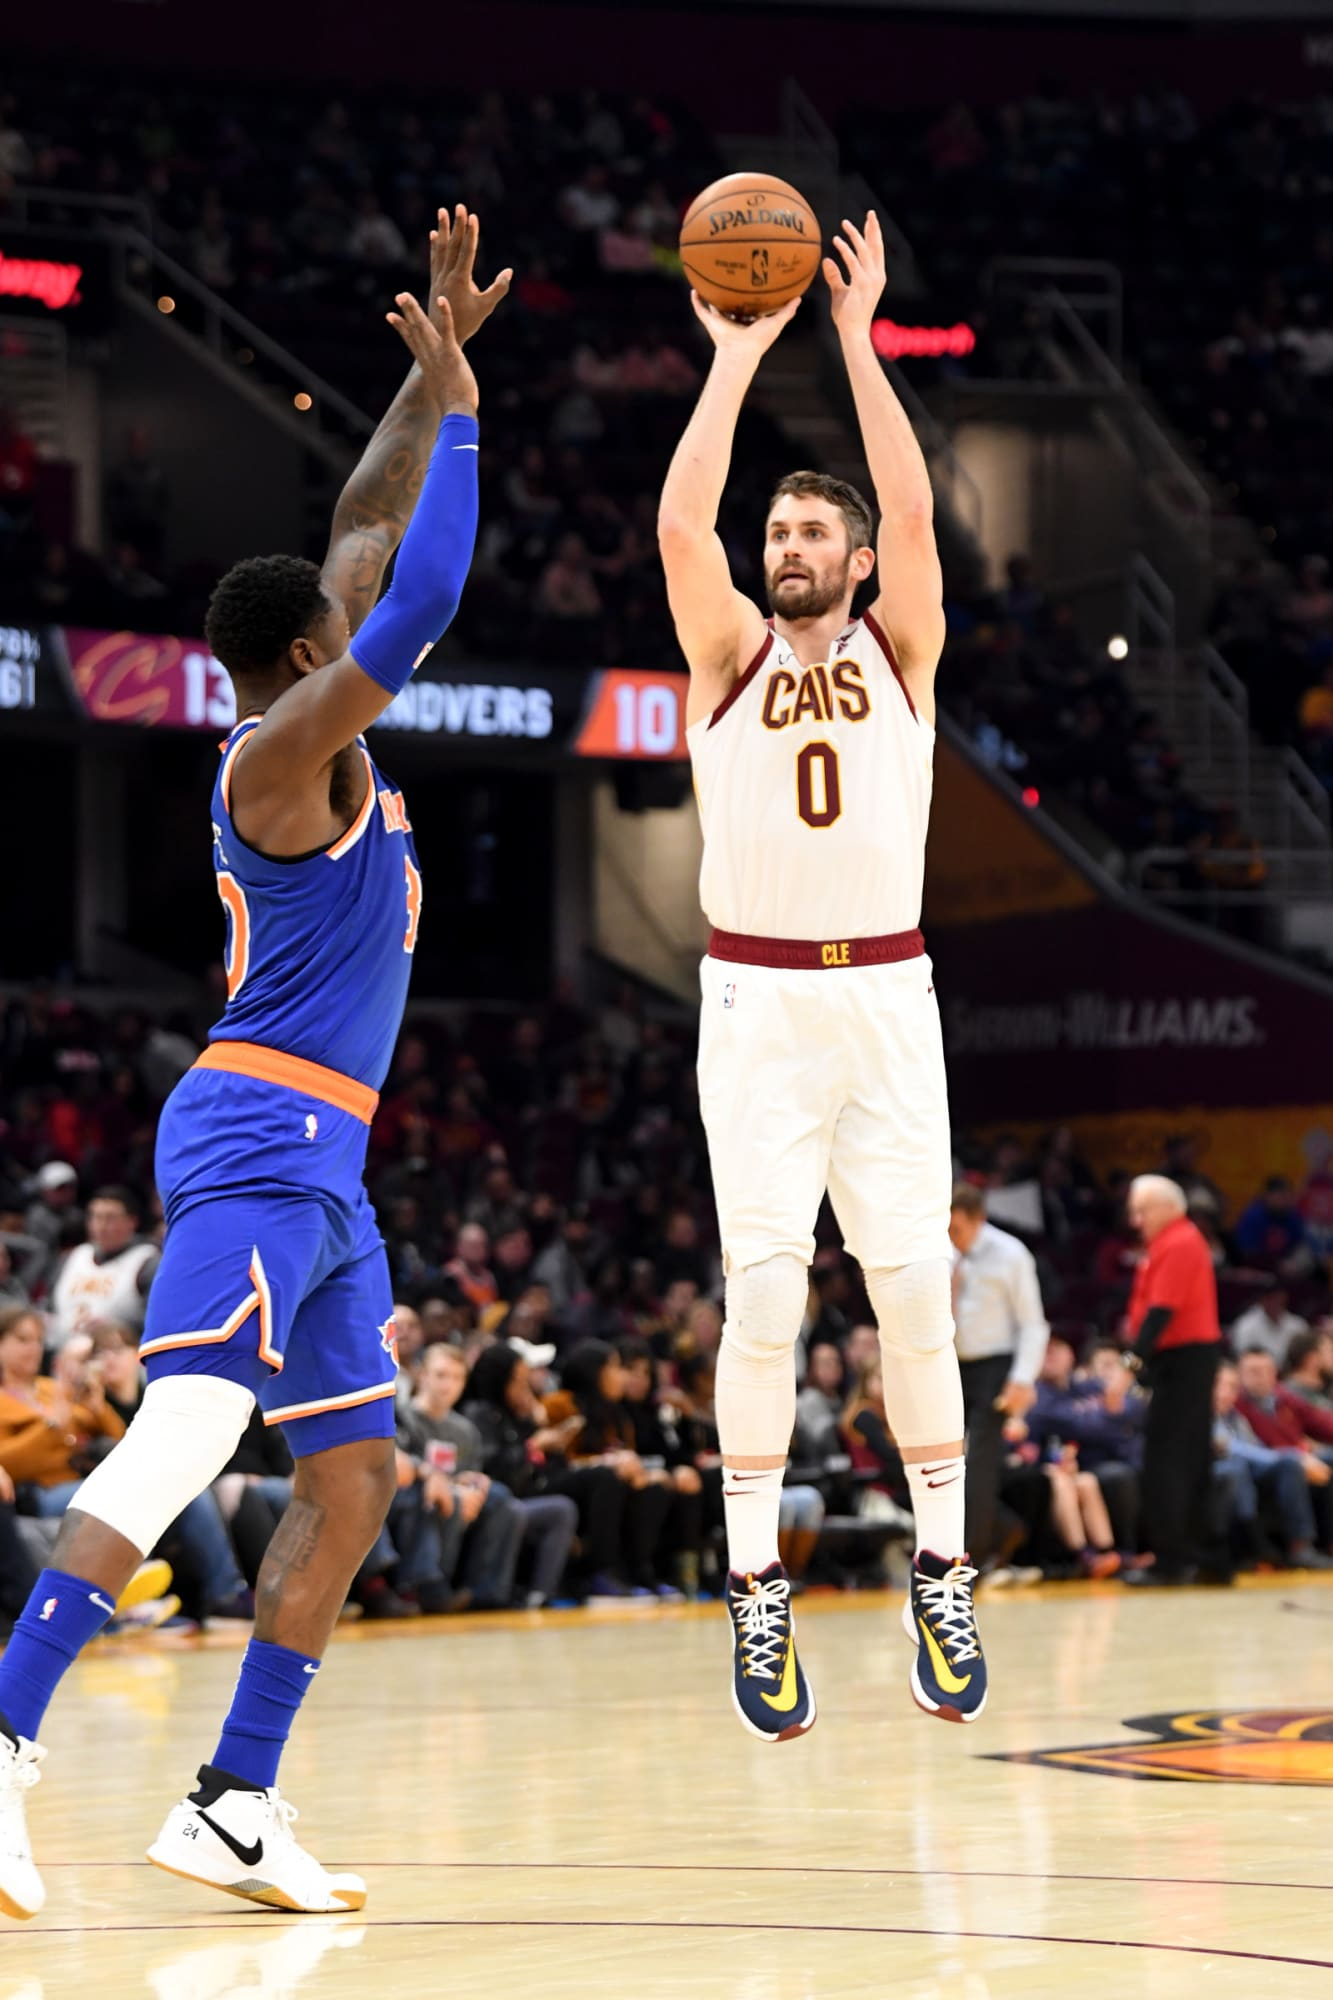 Kevin Love's primary role is being Cavs' best off-the-catch shooter still